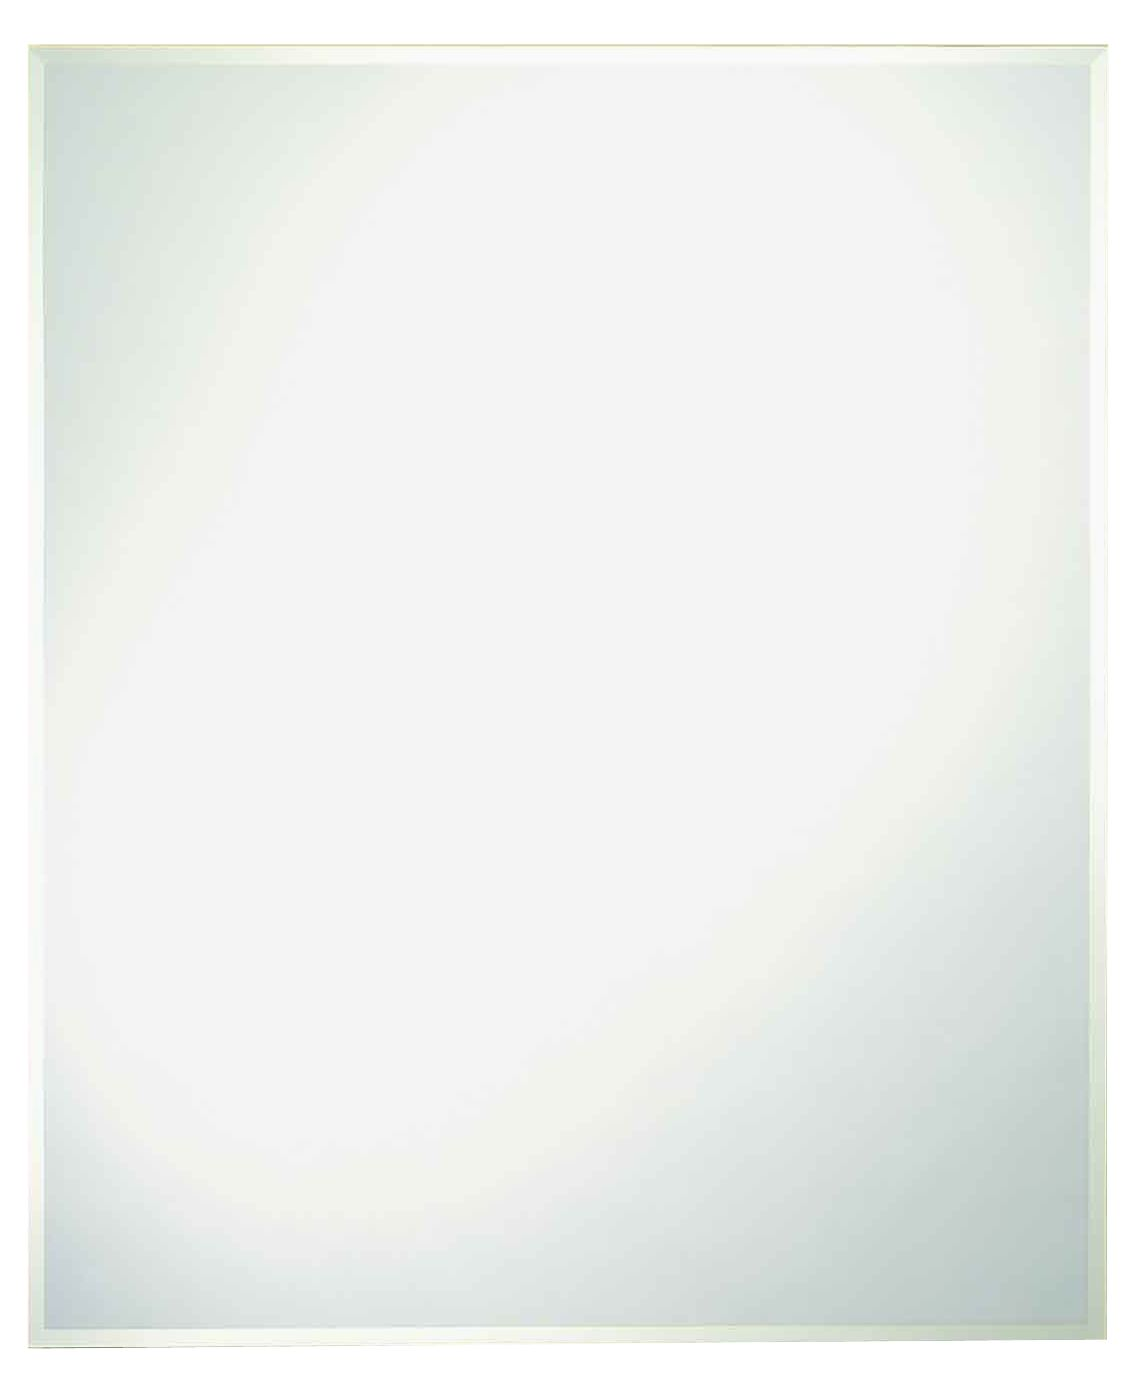 Home Decor Innovations 201240 30x36 Frameless Bevel Mirror